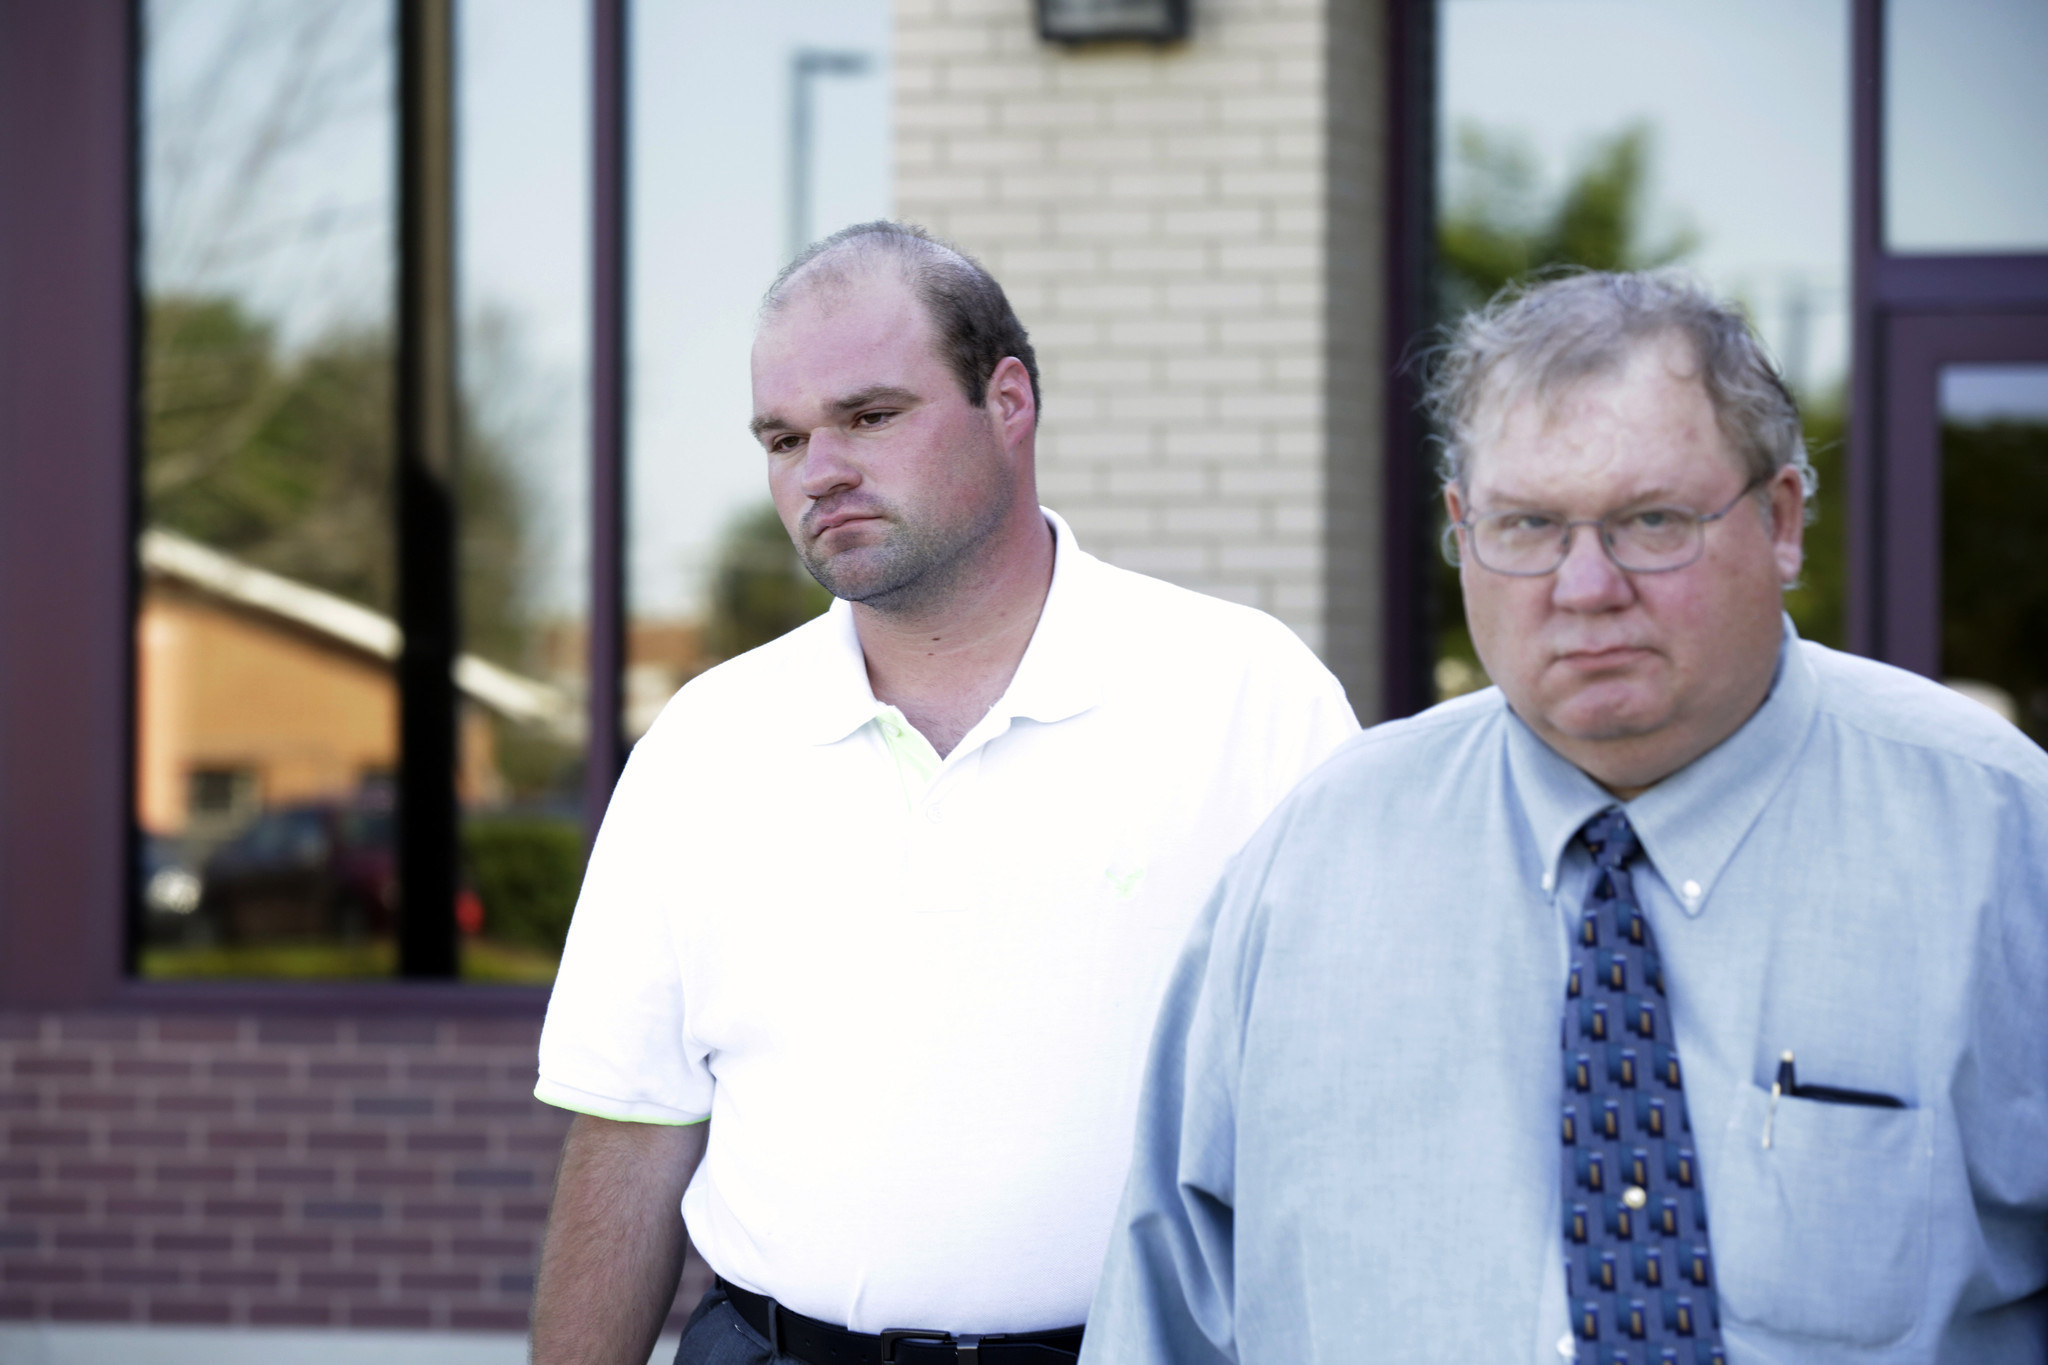 Woodstock Drug Counselor Charged With Sexually Abusing Boy At Water